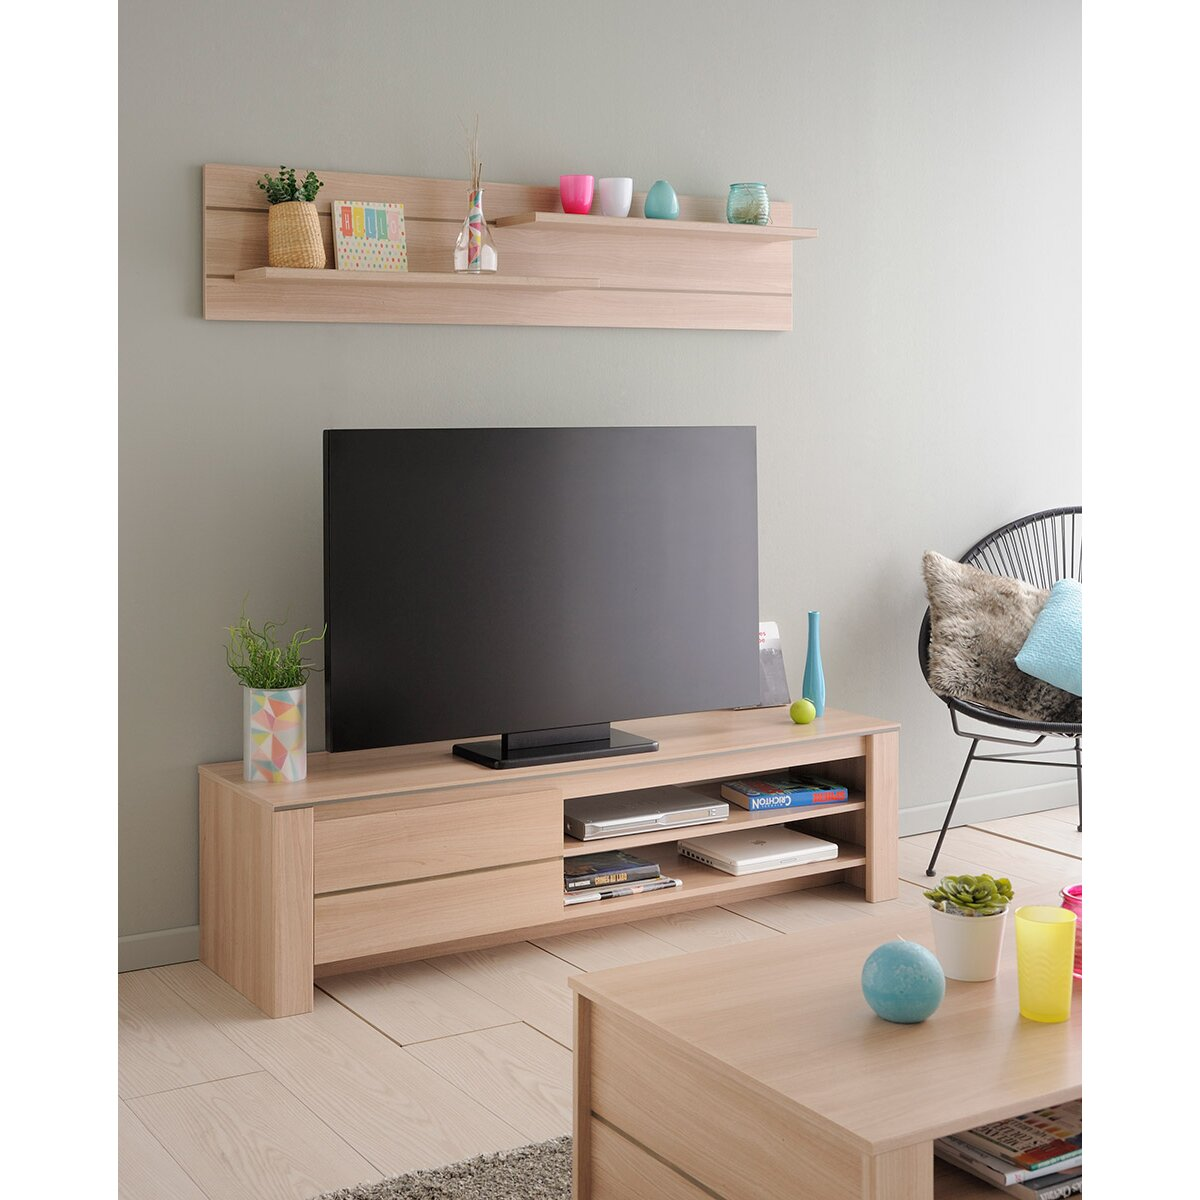 parisot nolita wall shelf reviews wayfair. Black Bedroom Furniture Sets. Home Design Ideas